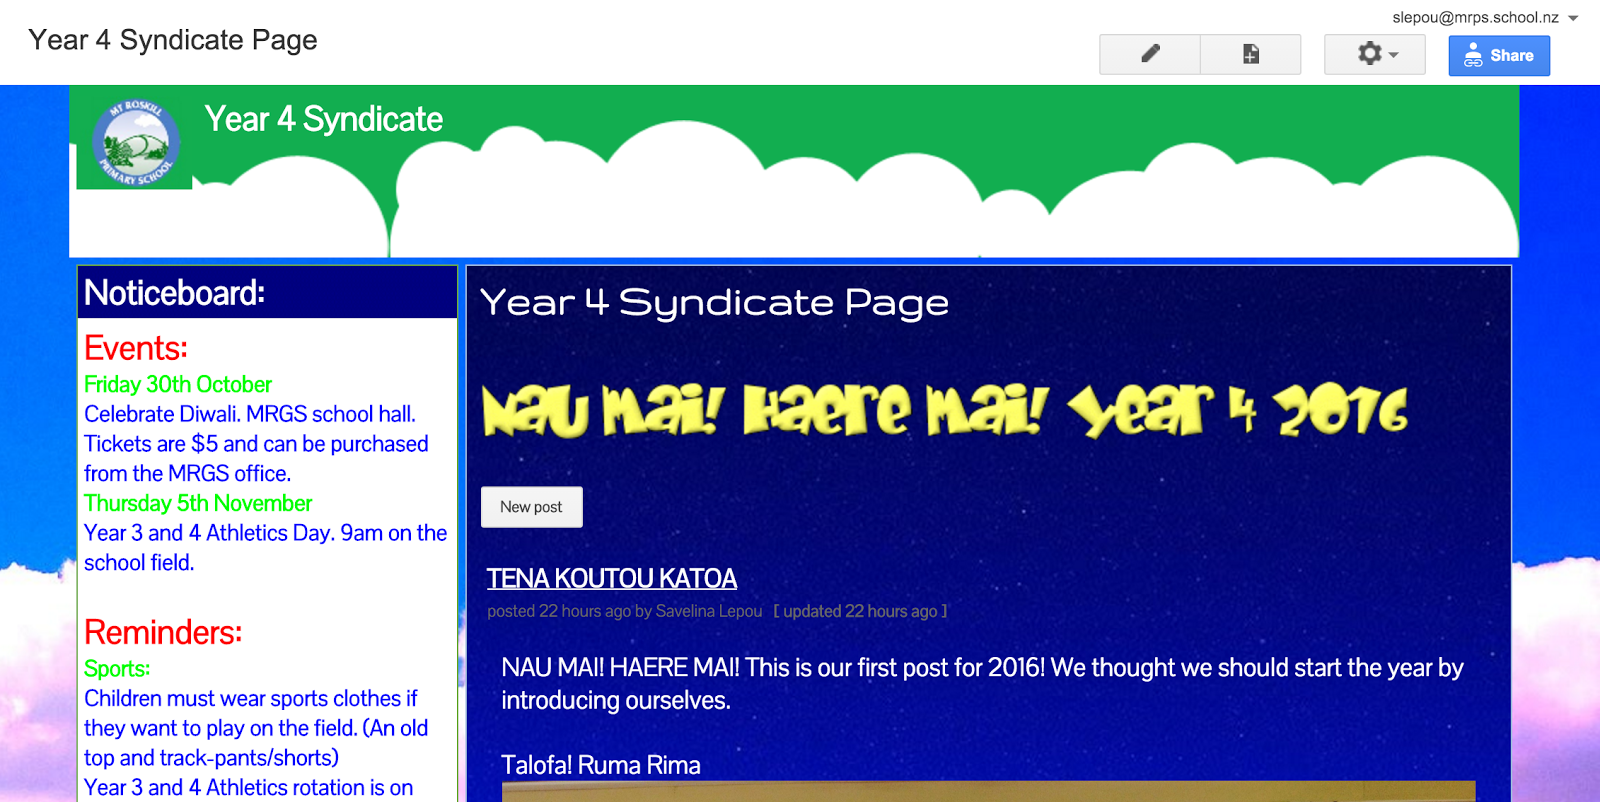 Year 4 Syndicate Webpage